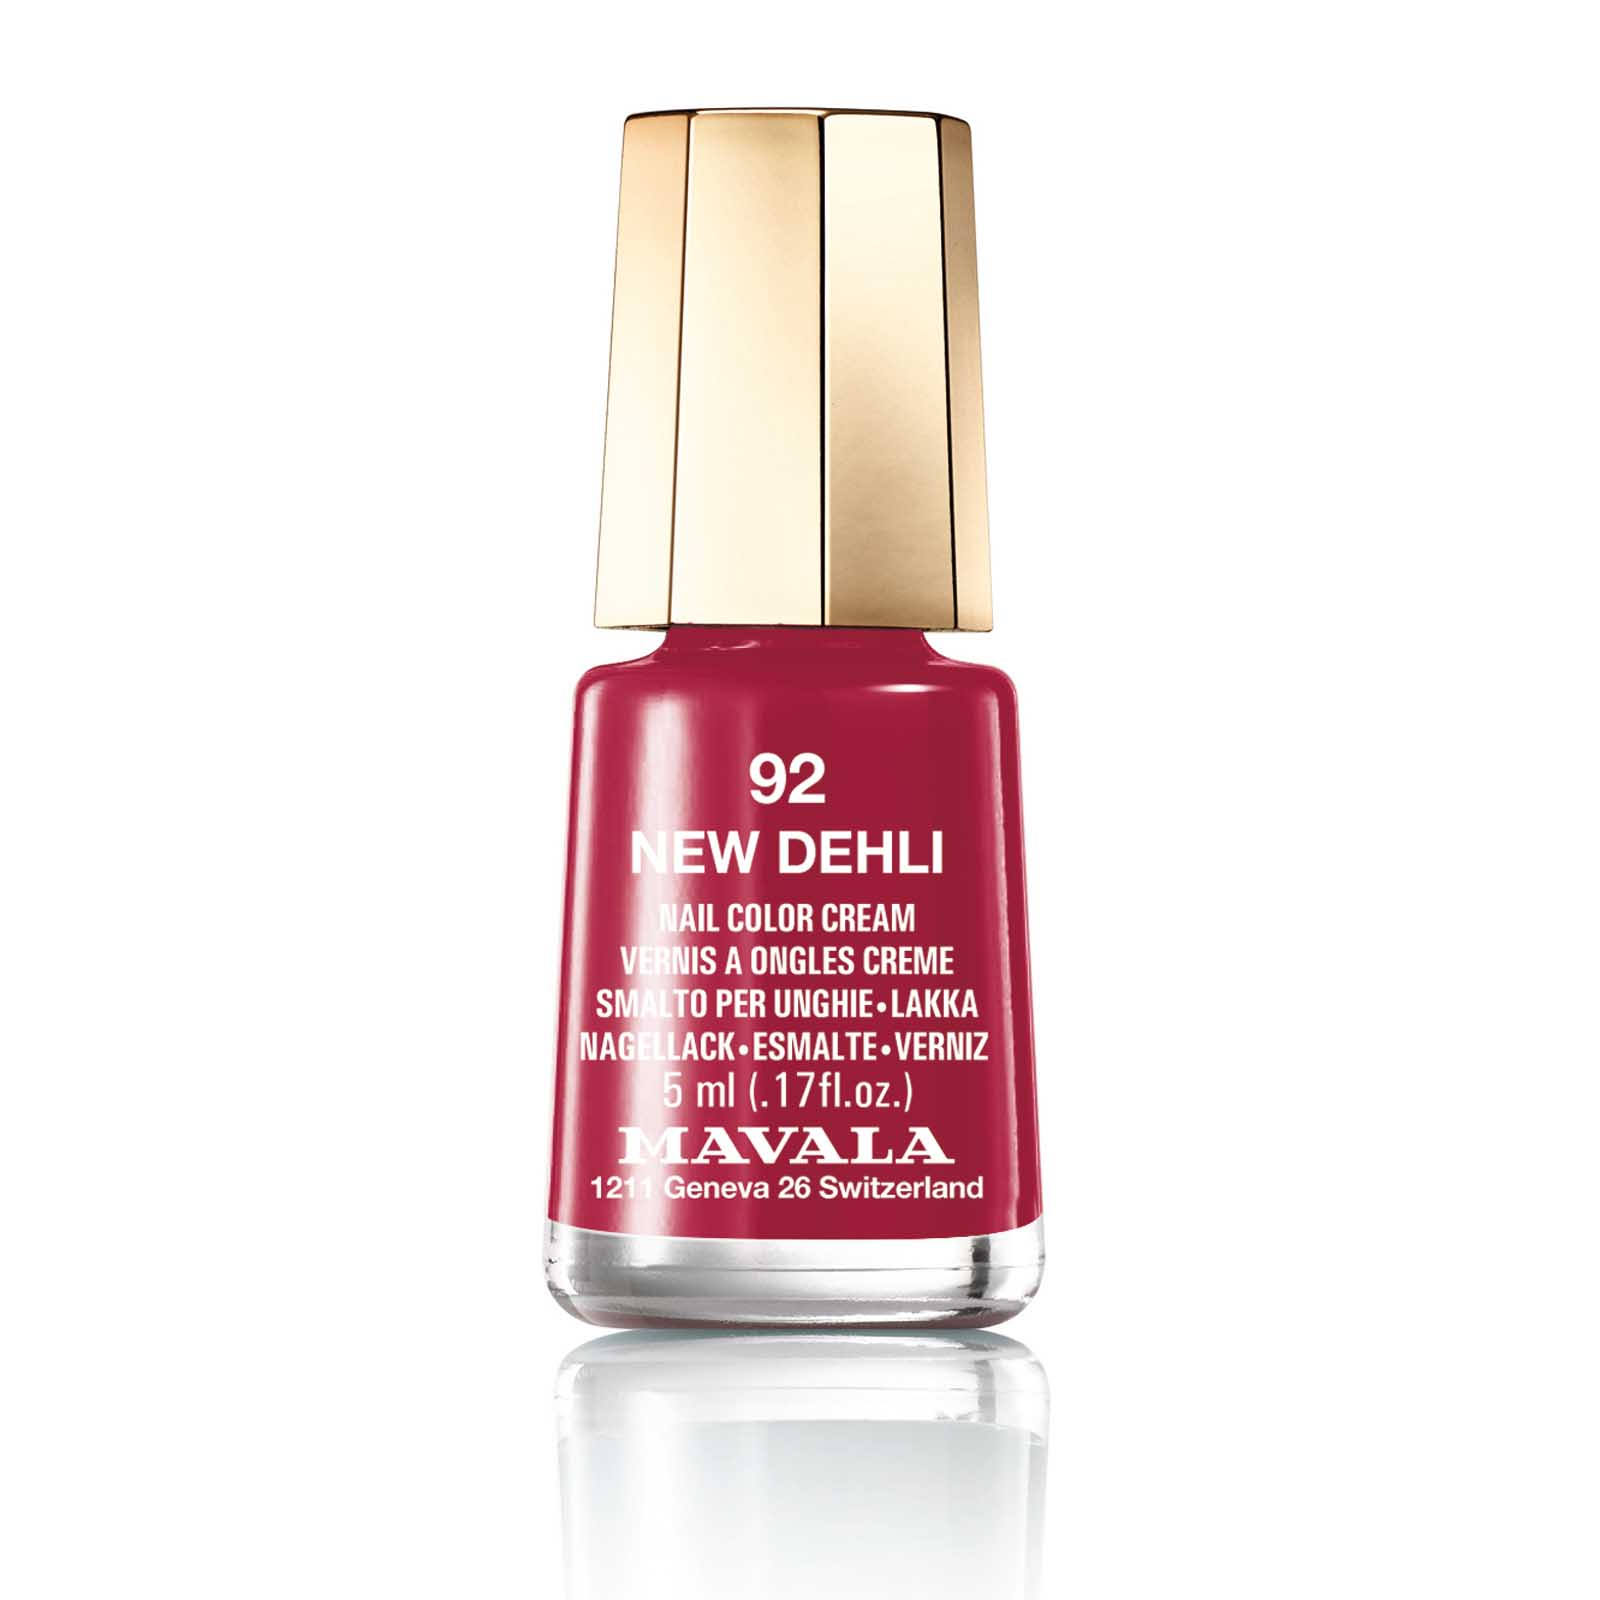 Mavala Switzerland Nail Color Cream 92 New Delhi